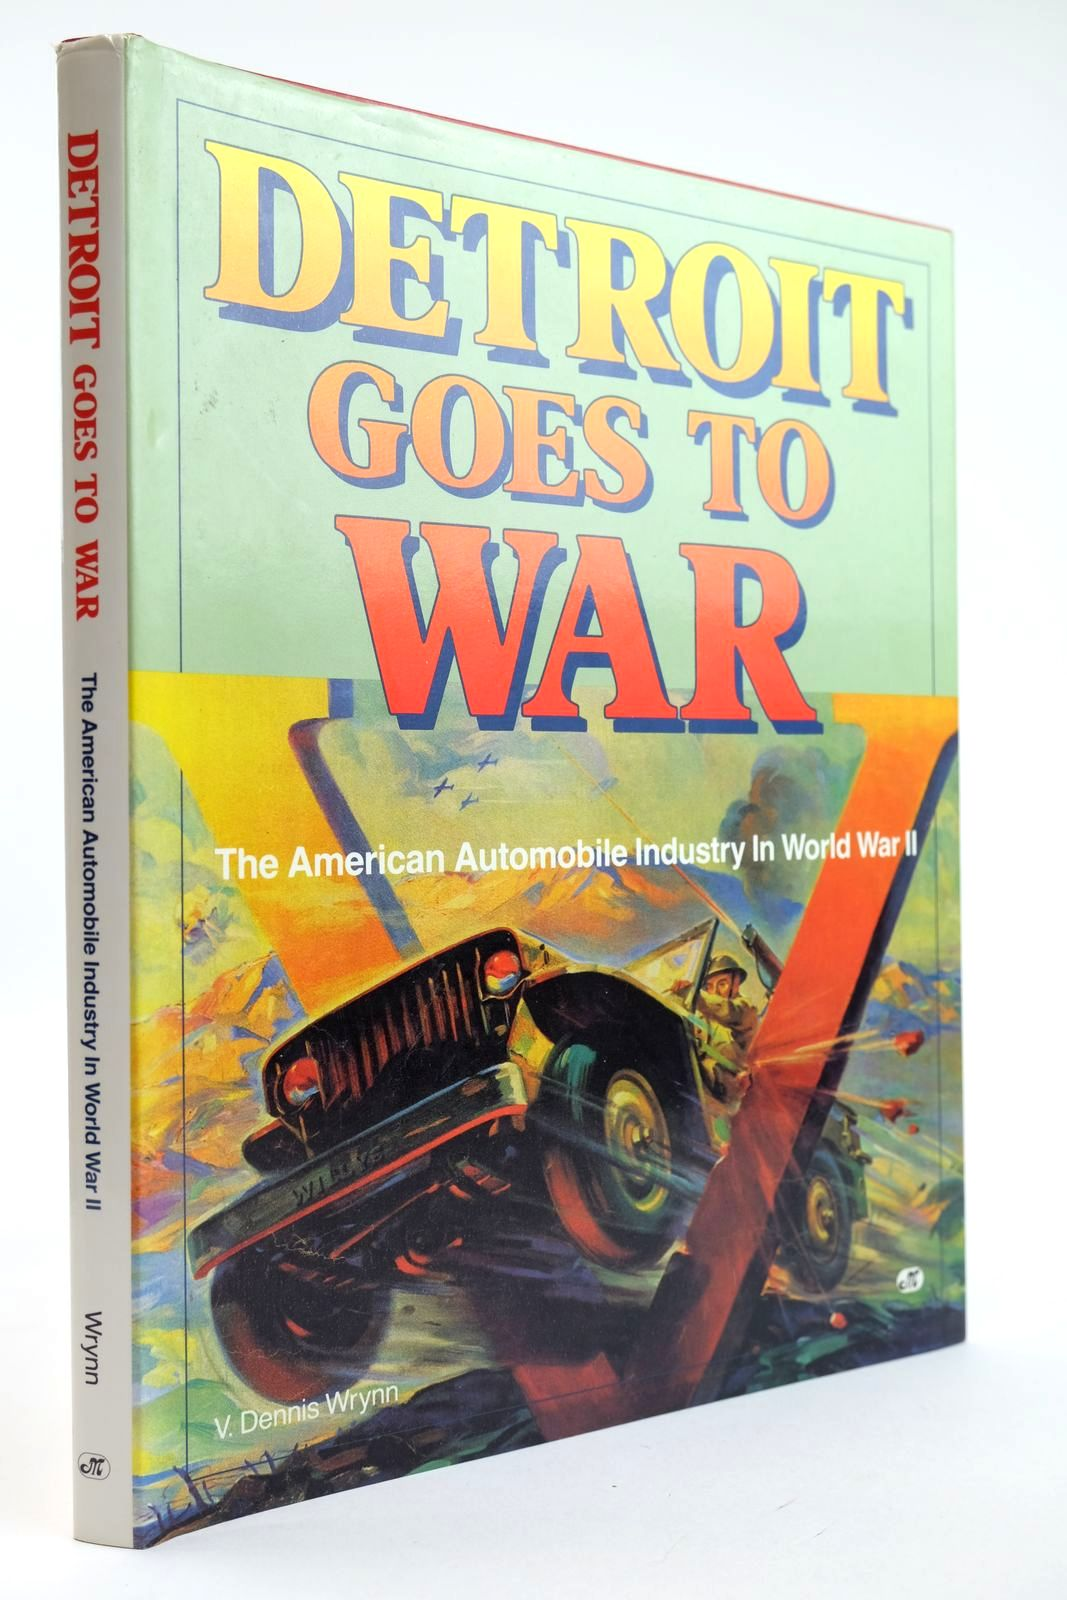 Photo of DETROIT GOES TO WAR written by Wrynn, V. Dennis published by Motorbooks International (STOCK CODE: 2132163)  for sale by Stella & Rose's Books